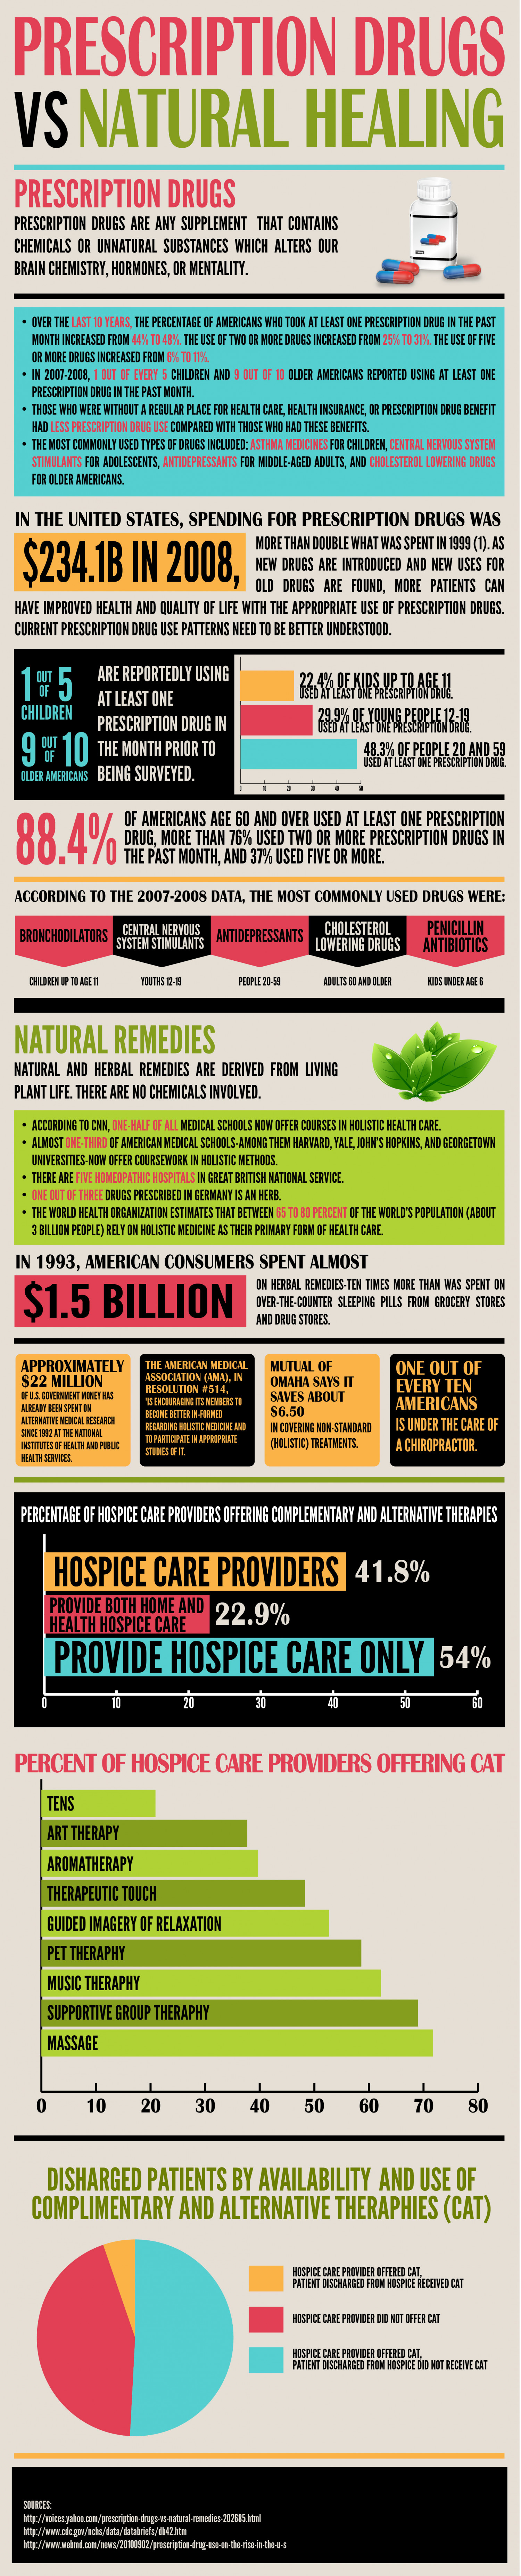 Prescription Drugs vs Natural Healing Infographic